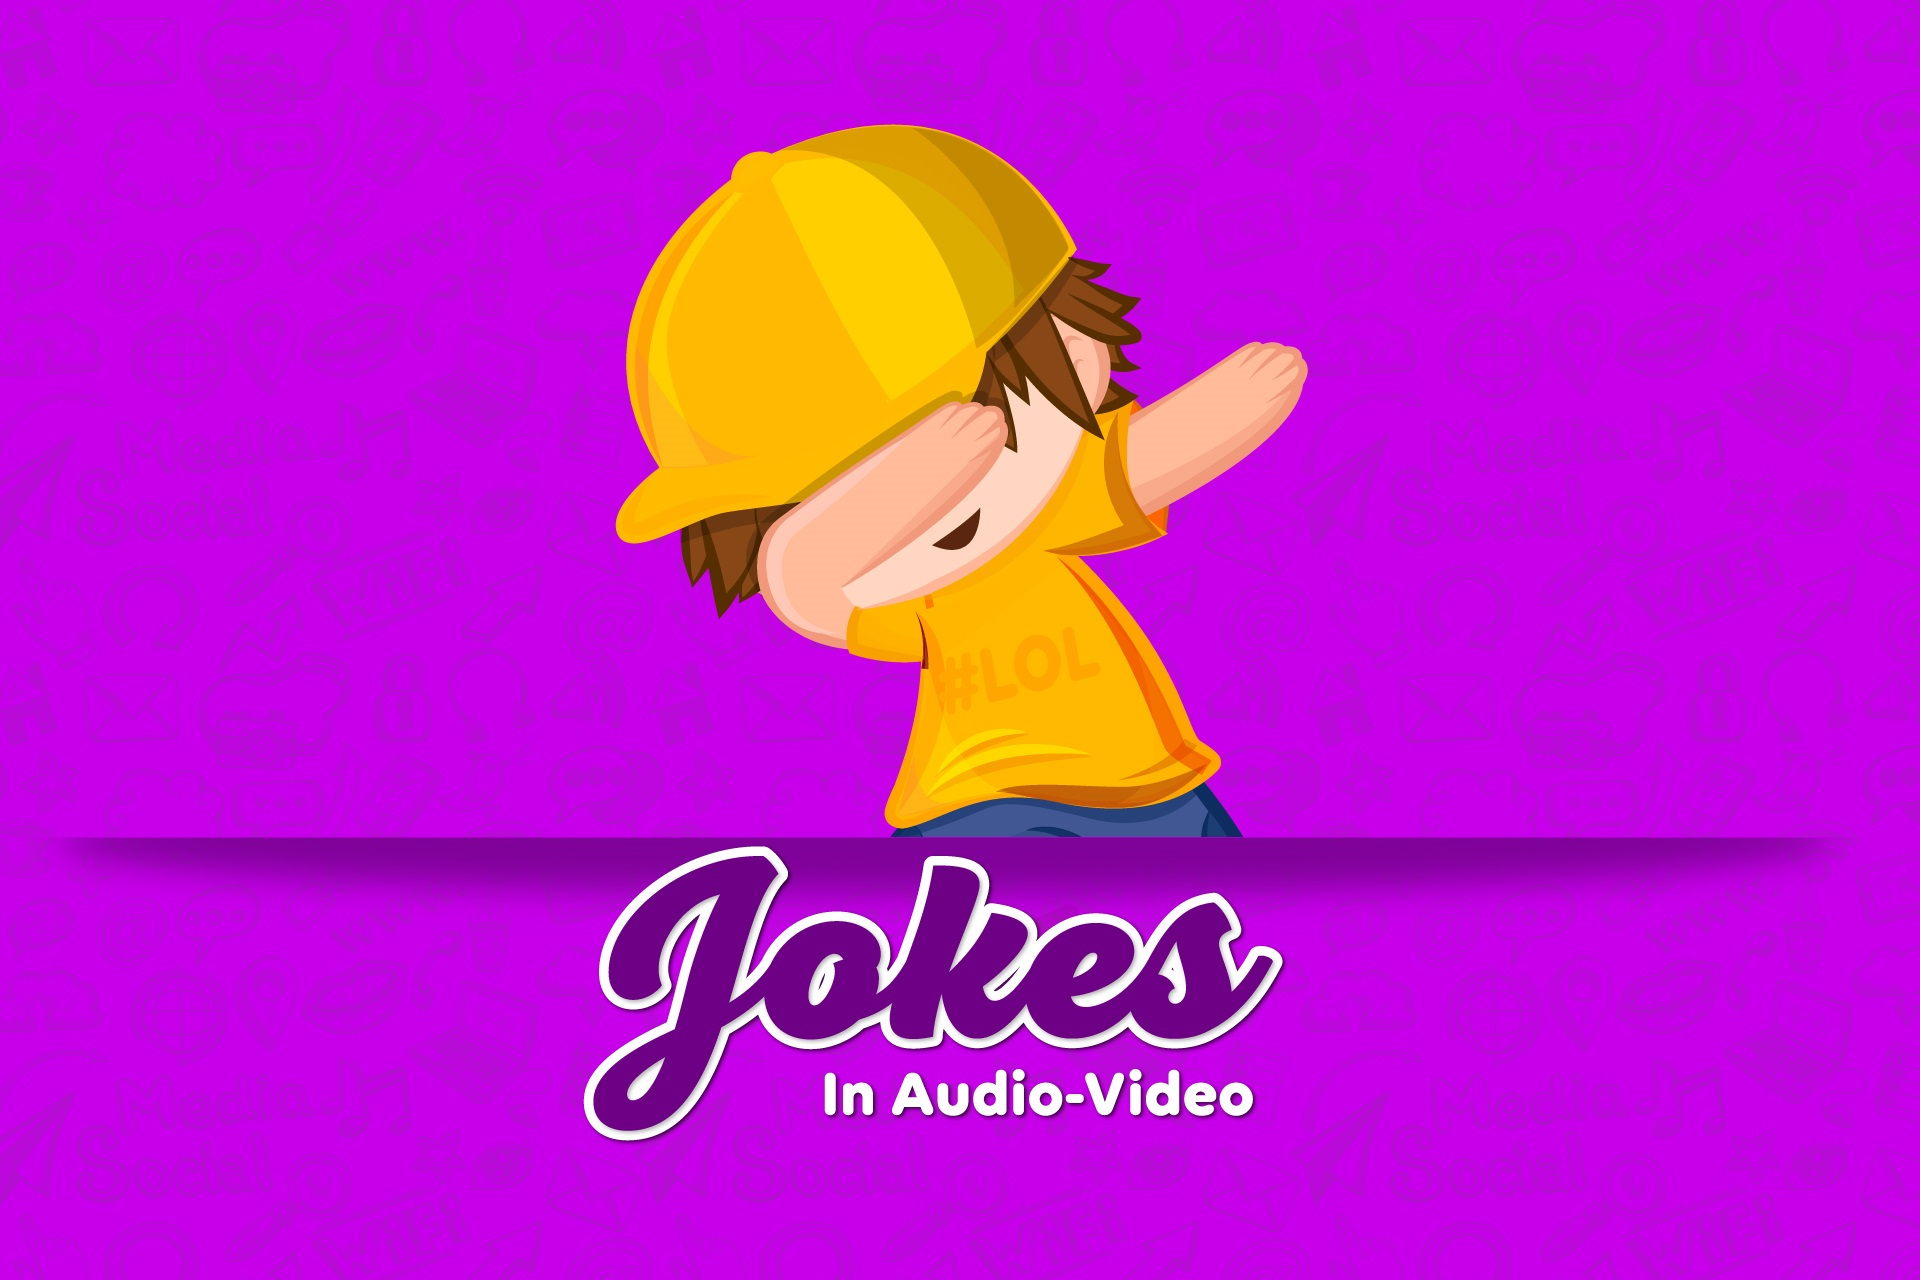 Jokes-In-Audio-Video-Head-Image